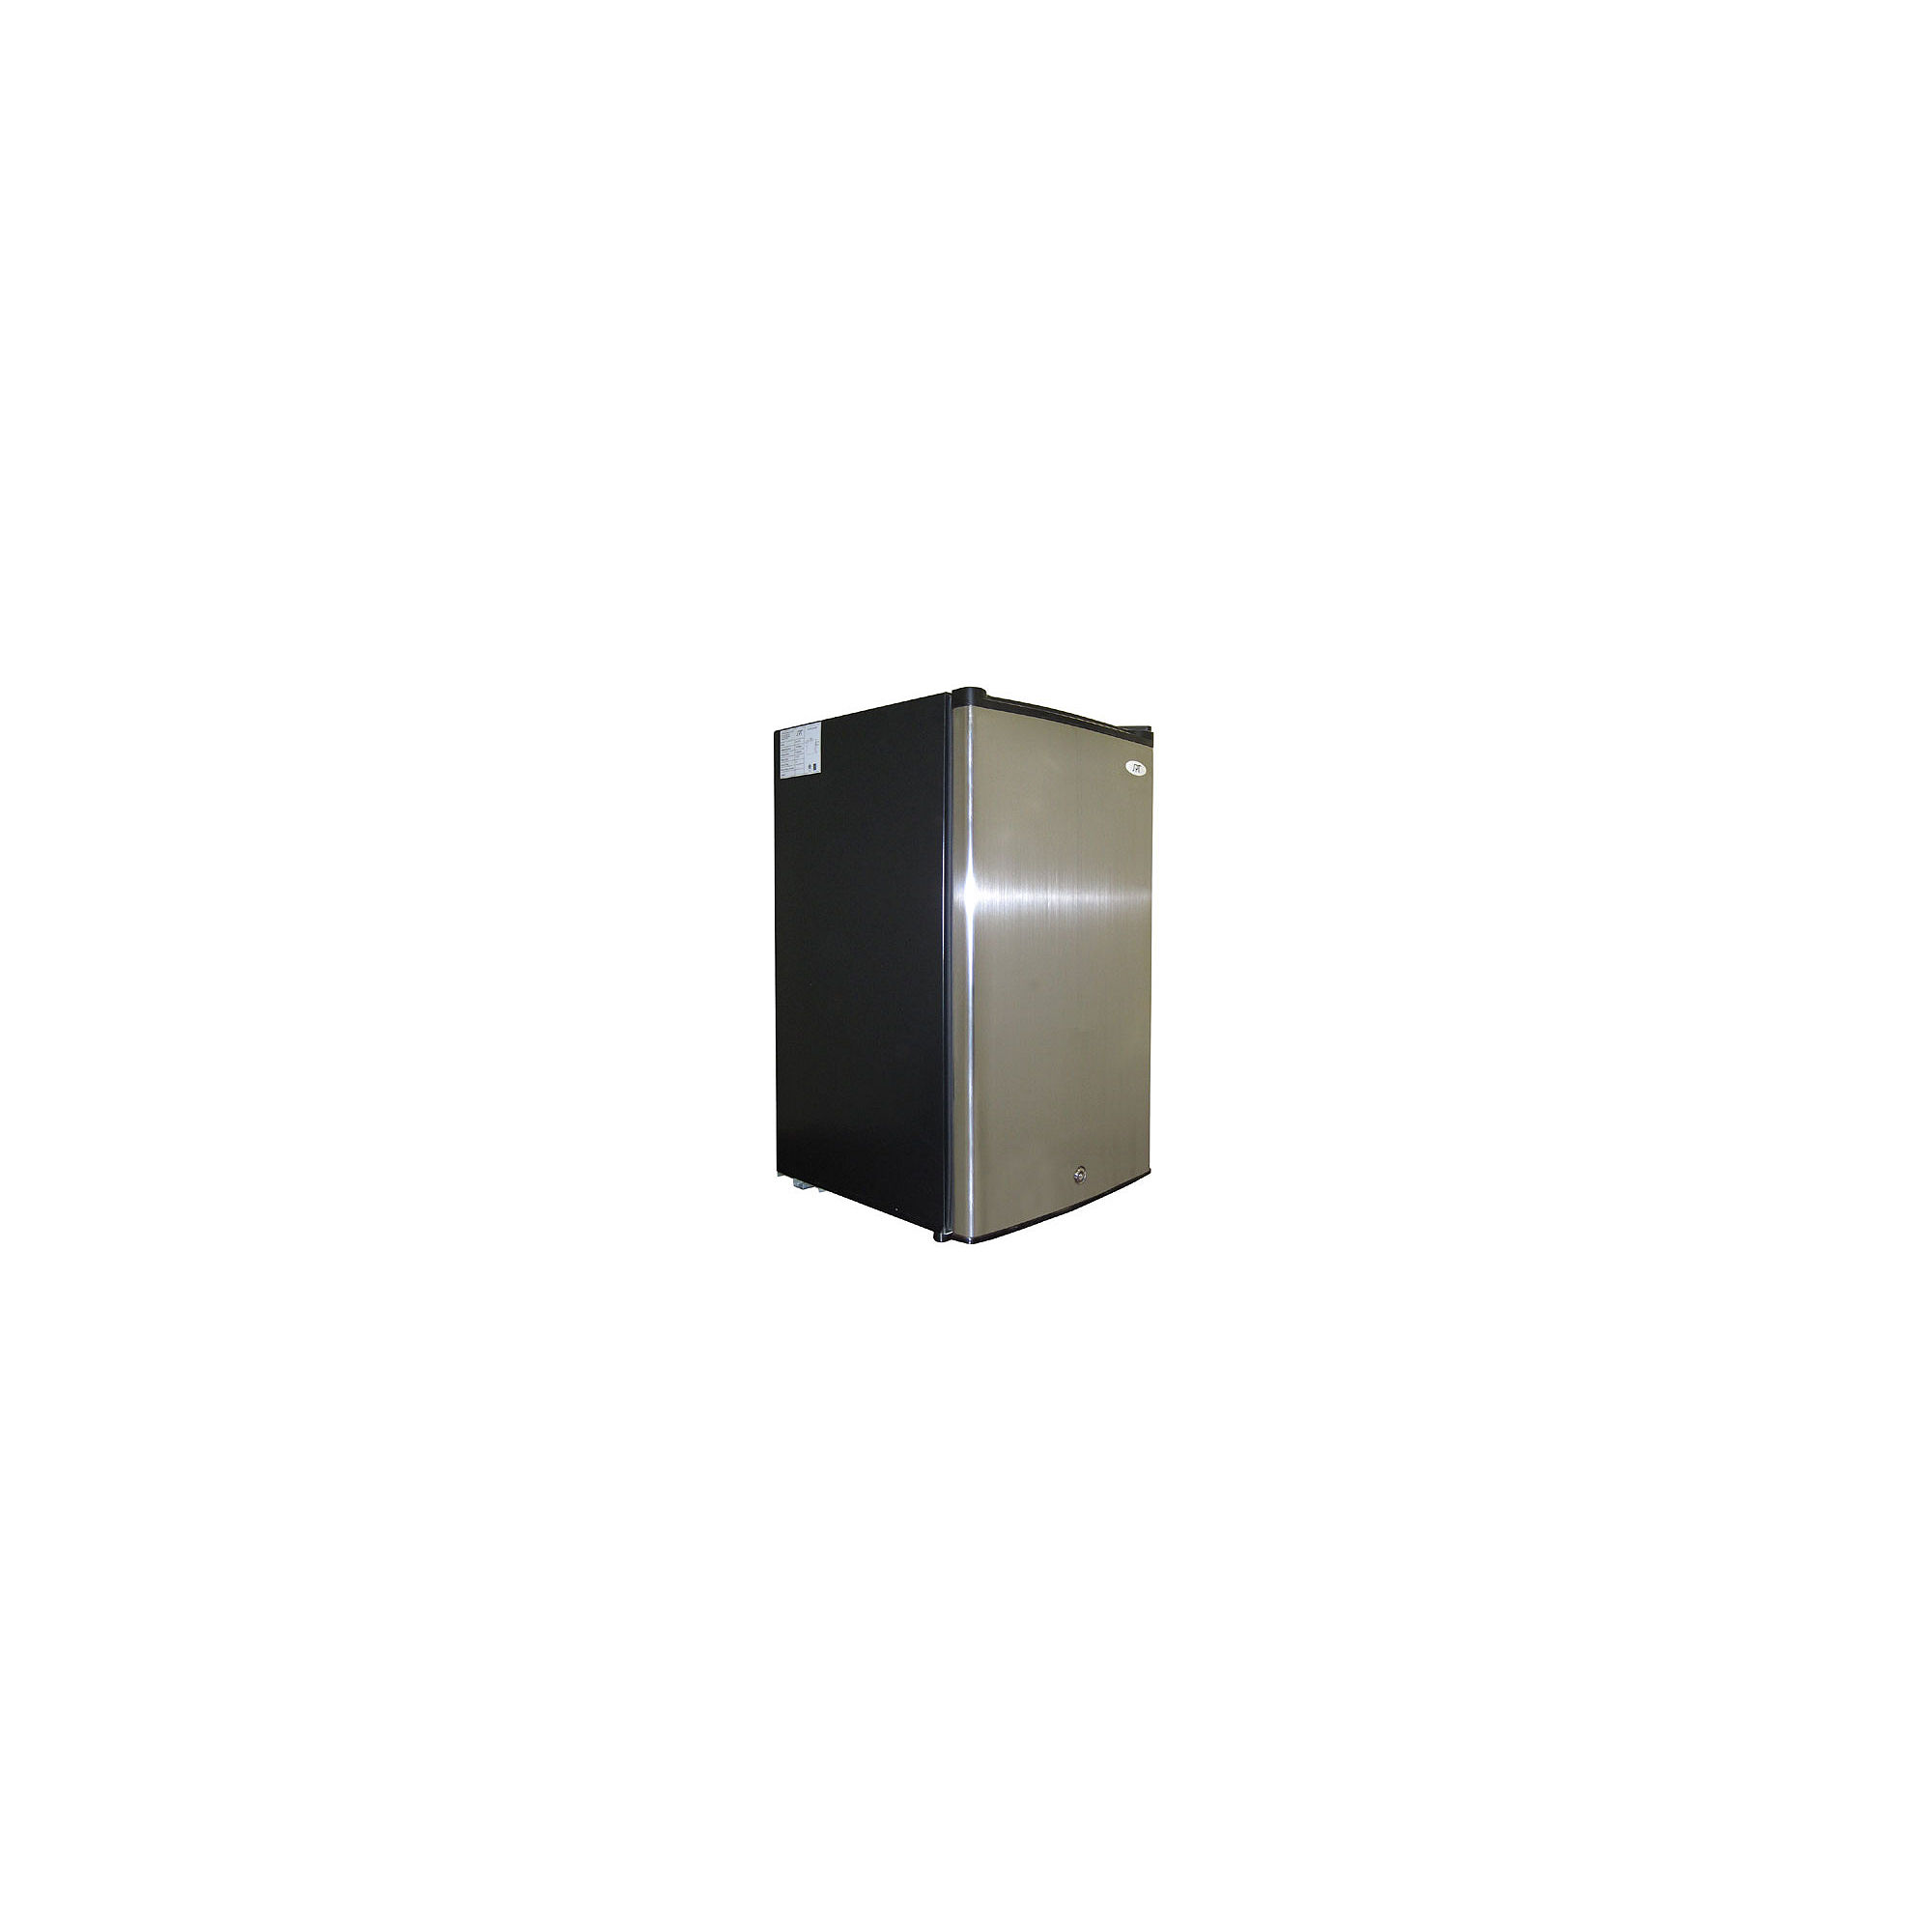 SPT UF-304SS: 3.0 cu. Ft. Upright Freezer in Stainless Steel - Energy Star